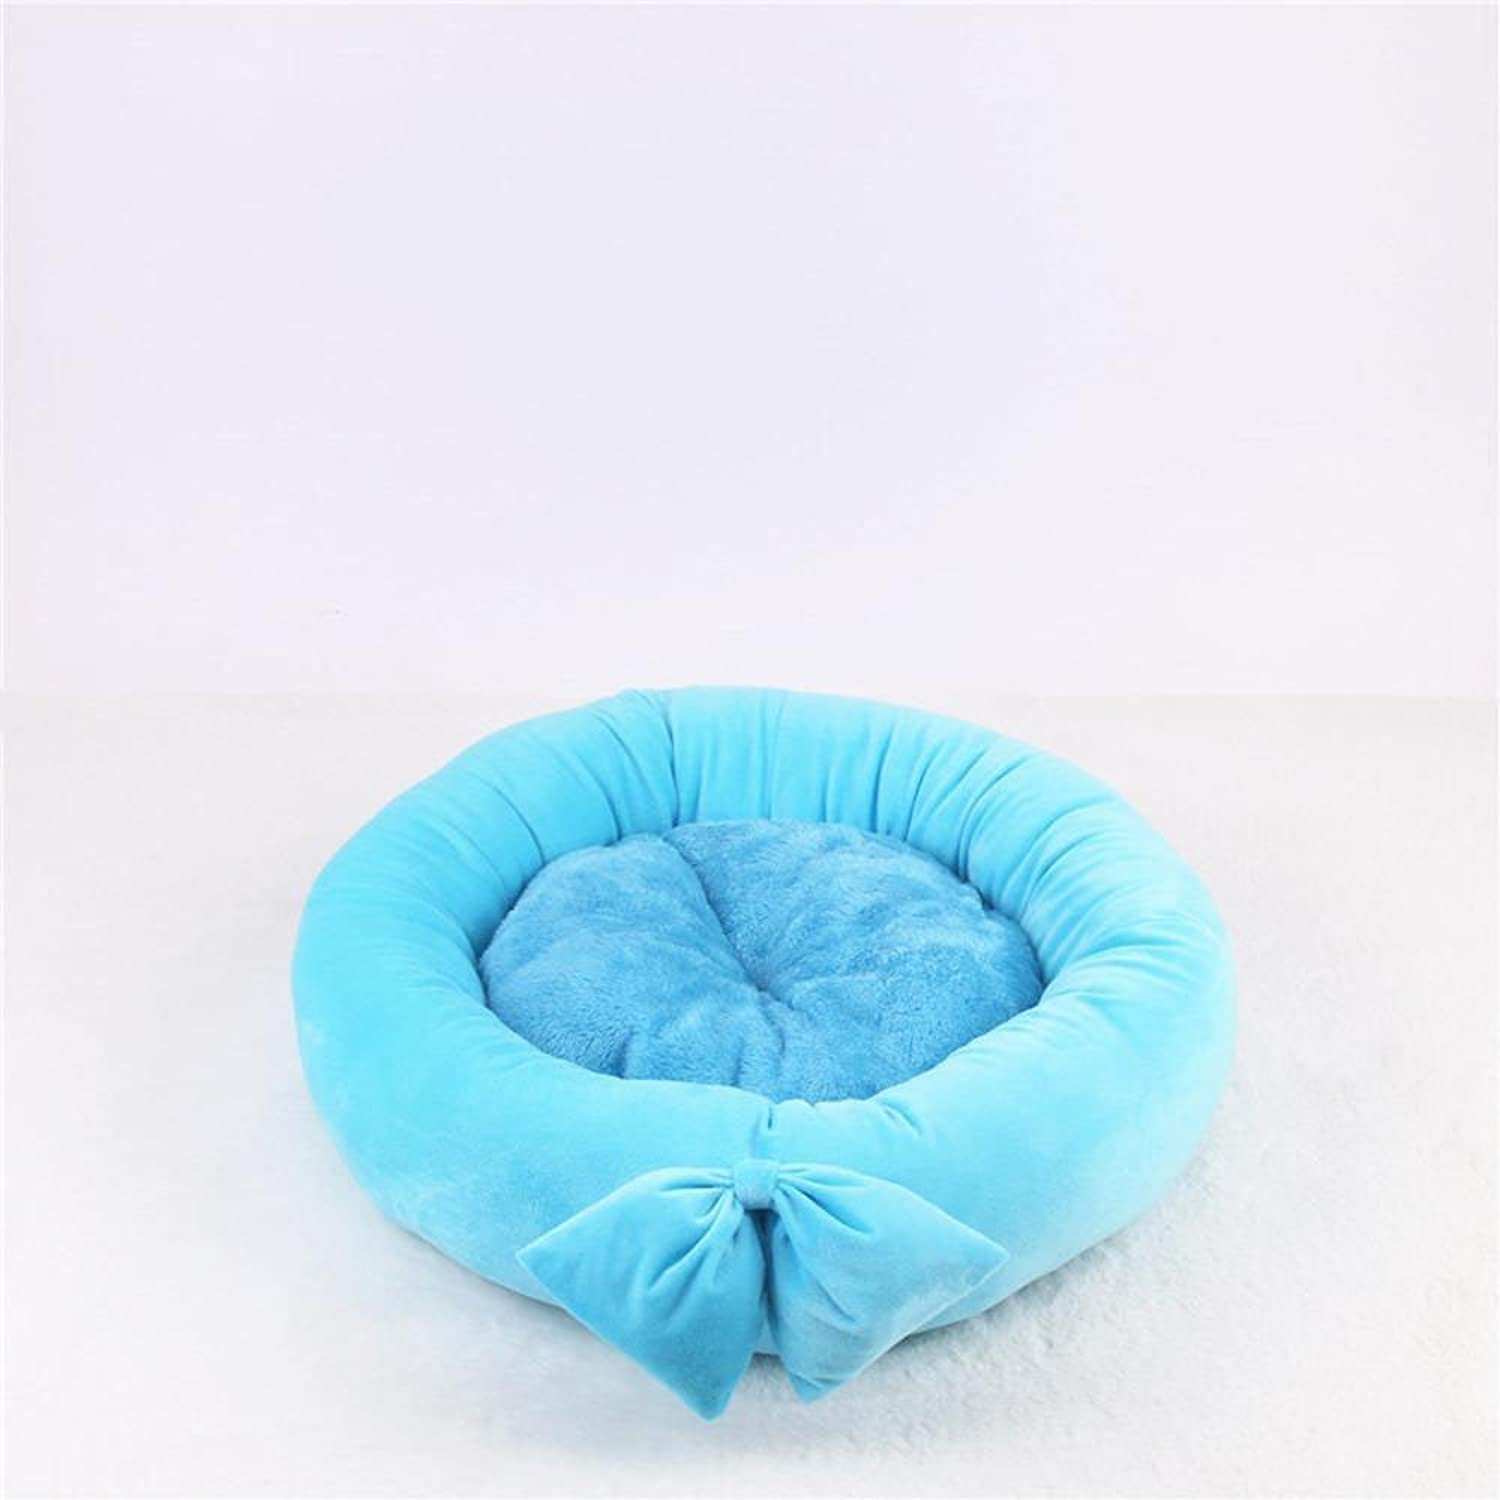 Lozse Pet Beds Small and mediumsized dog pet nest cushion cat nest Butterfly knot round kennel Four Seasons for Dogs and Cats Sleeping Cushion